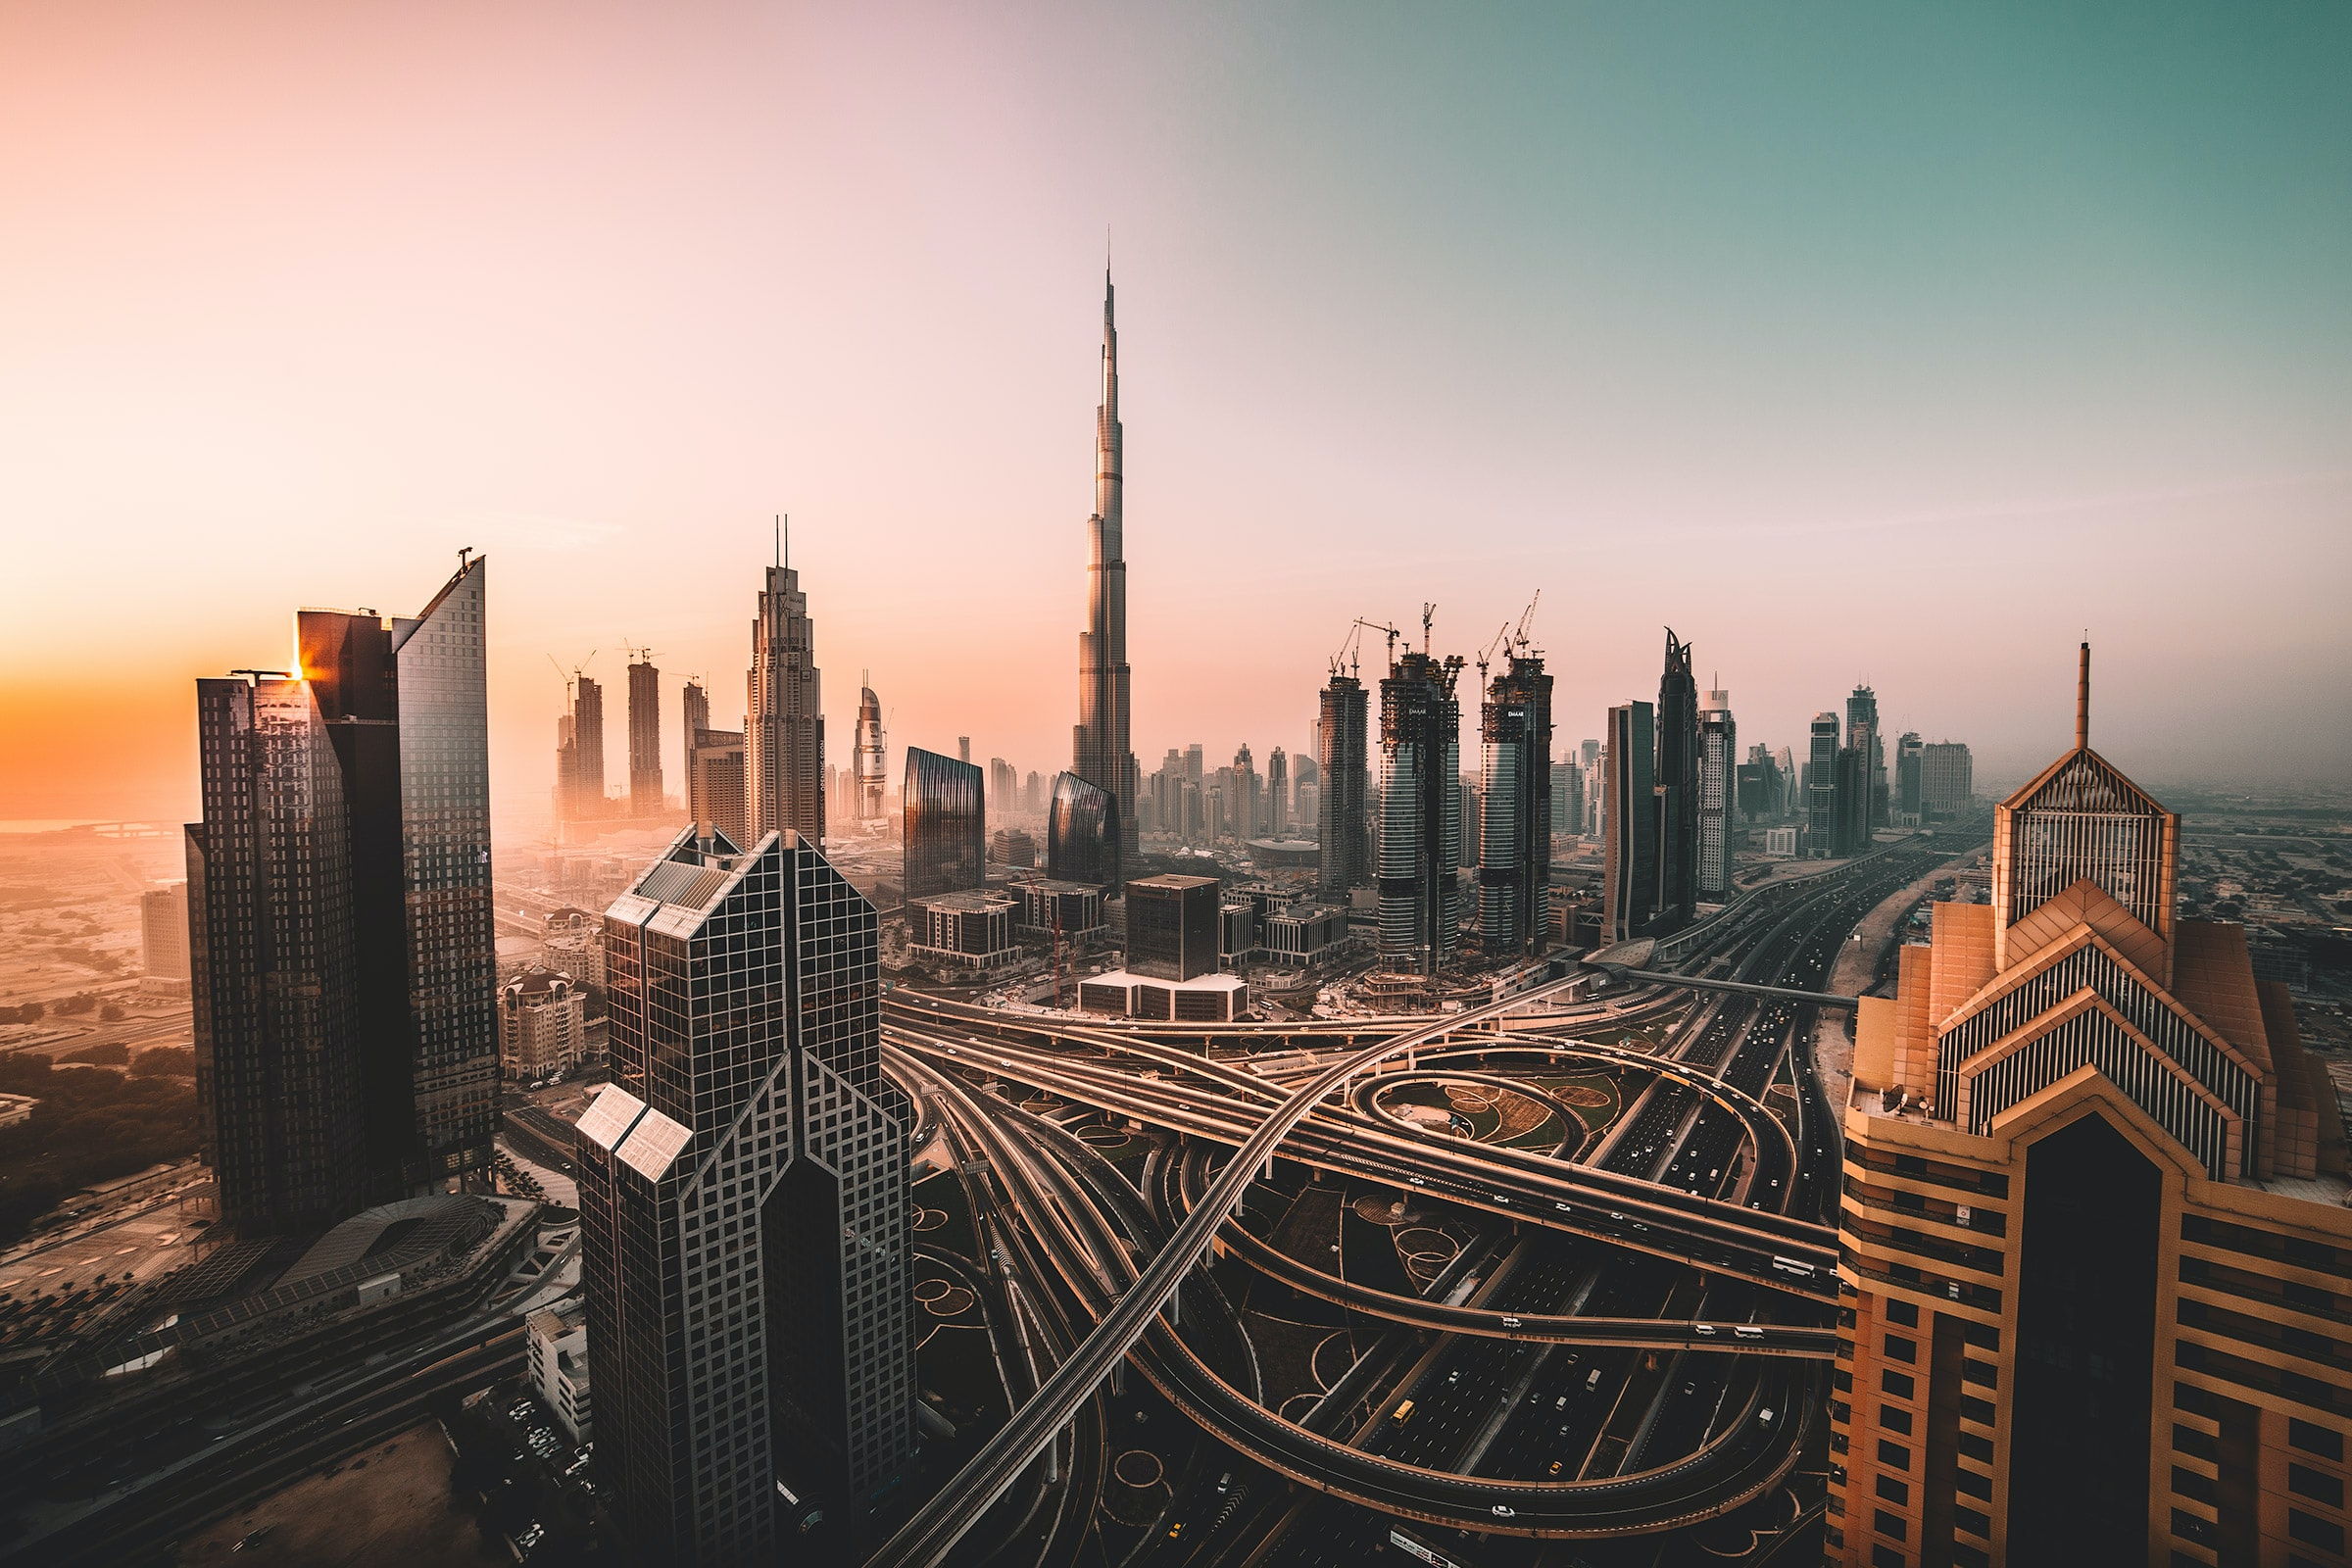 Sunrise shot of Downtown Dubai and Burj Khalifa; image by David Rodrigo, via Unsplash.com.